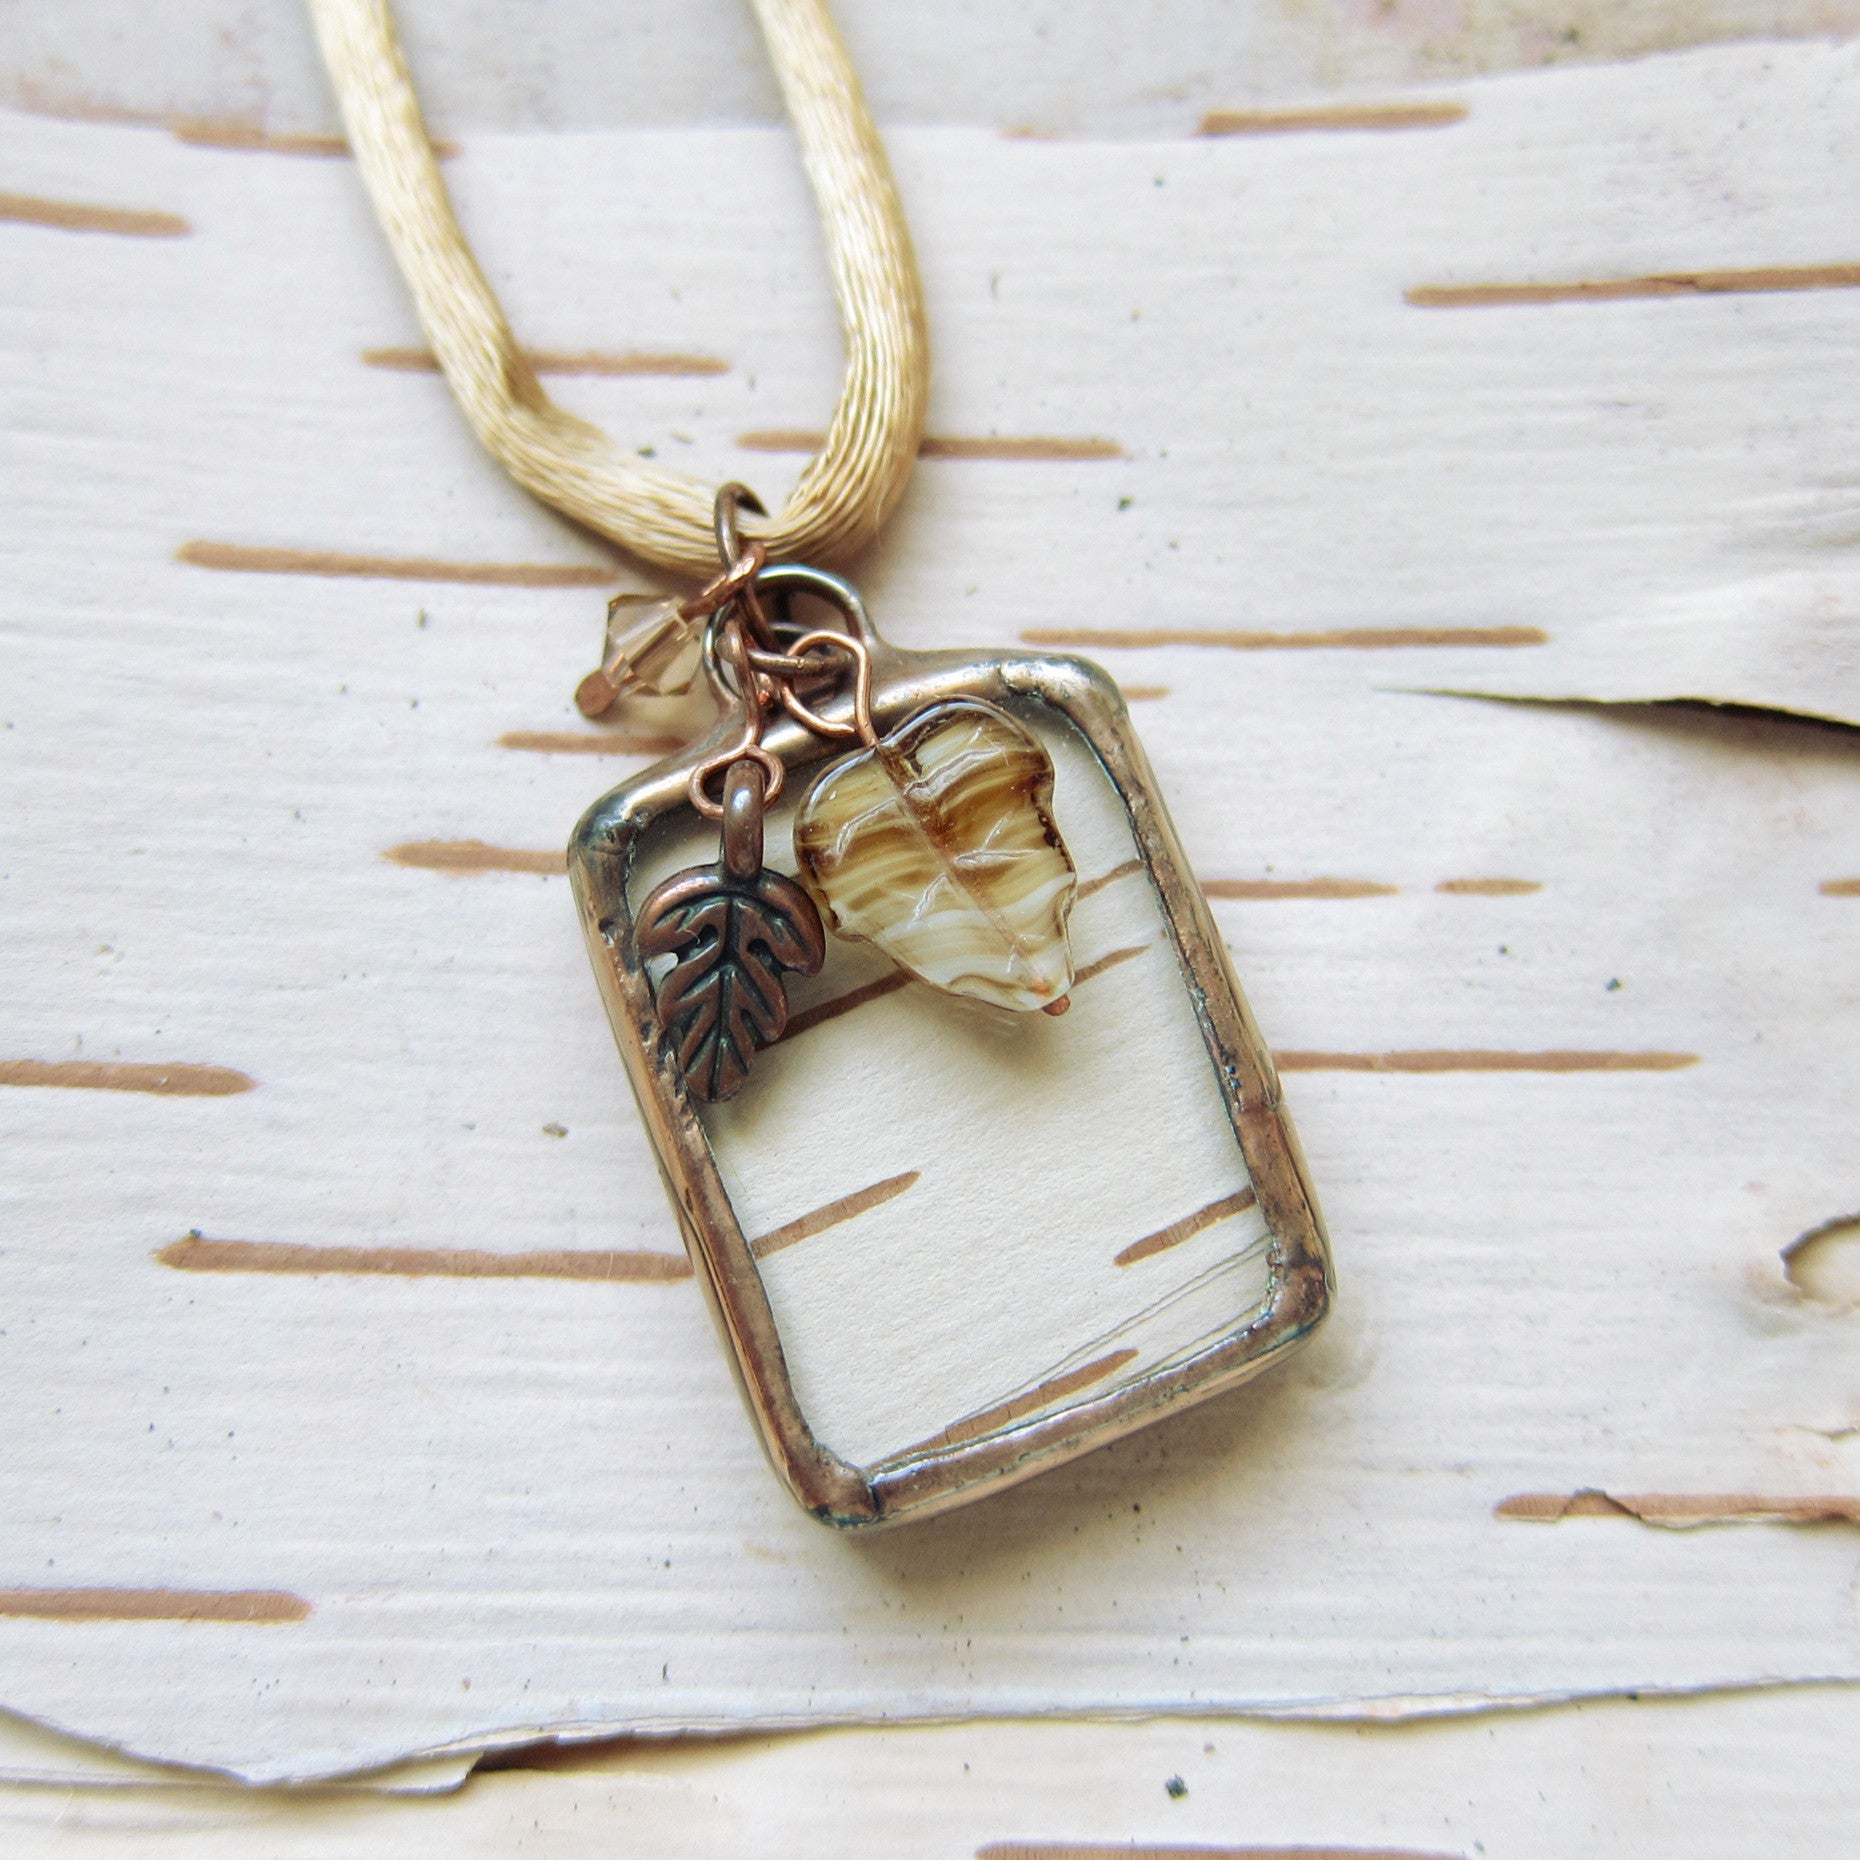 Copper birch bark stained glass pendant necklace